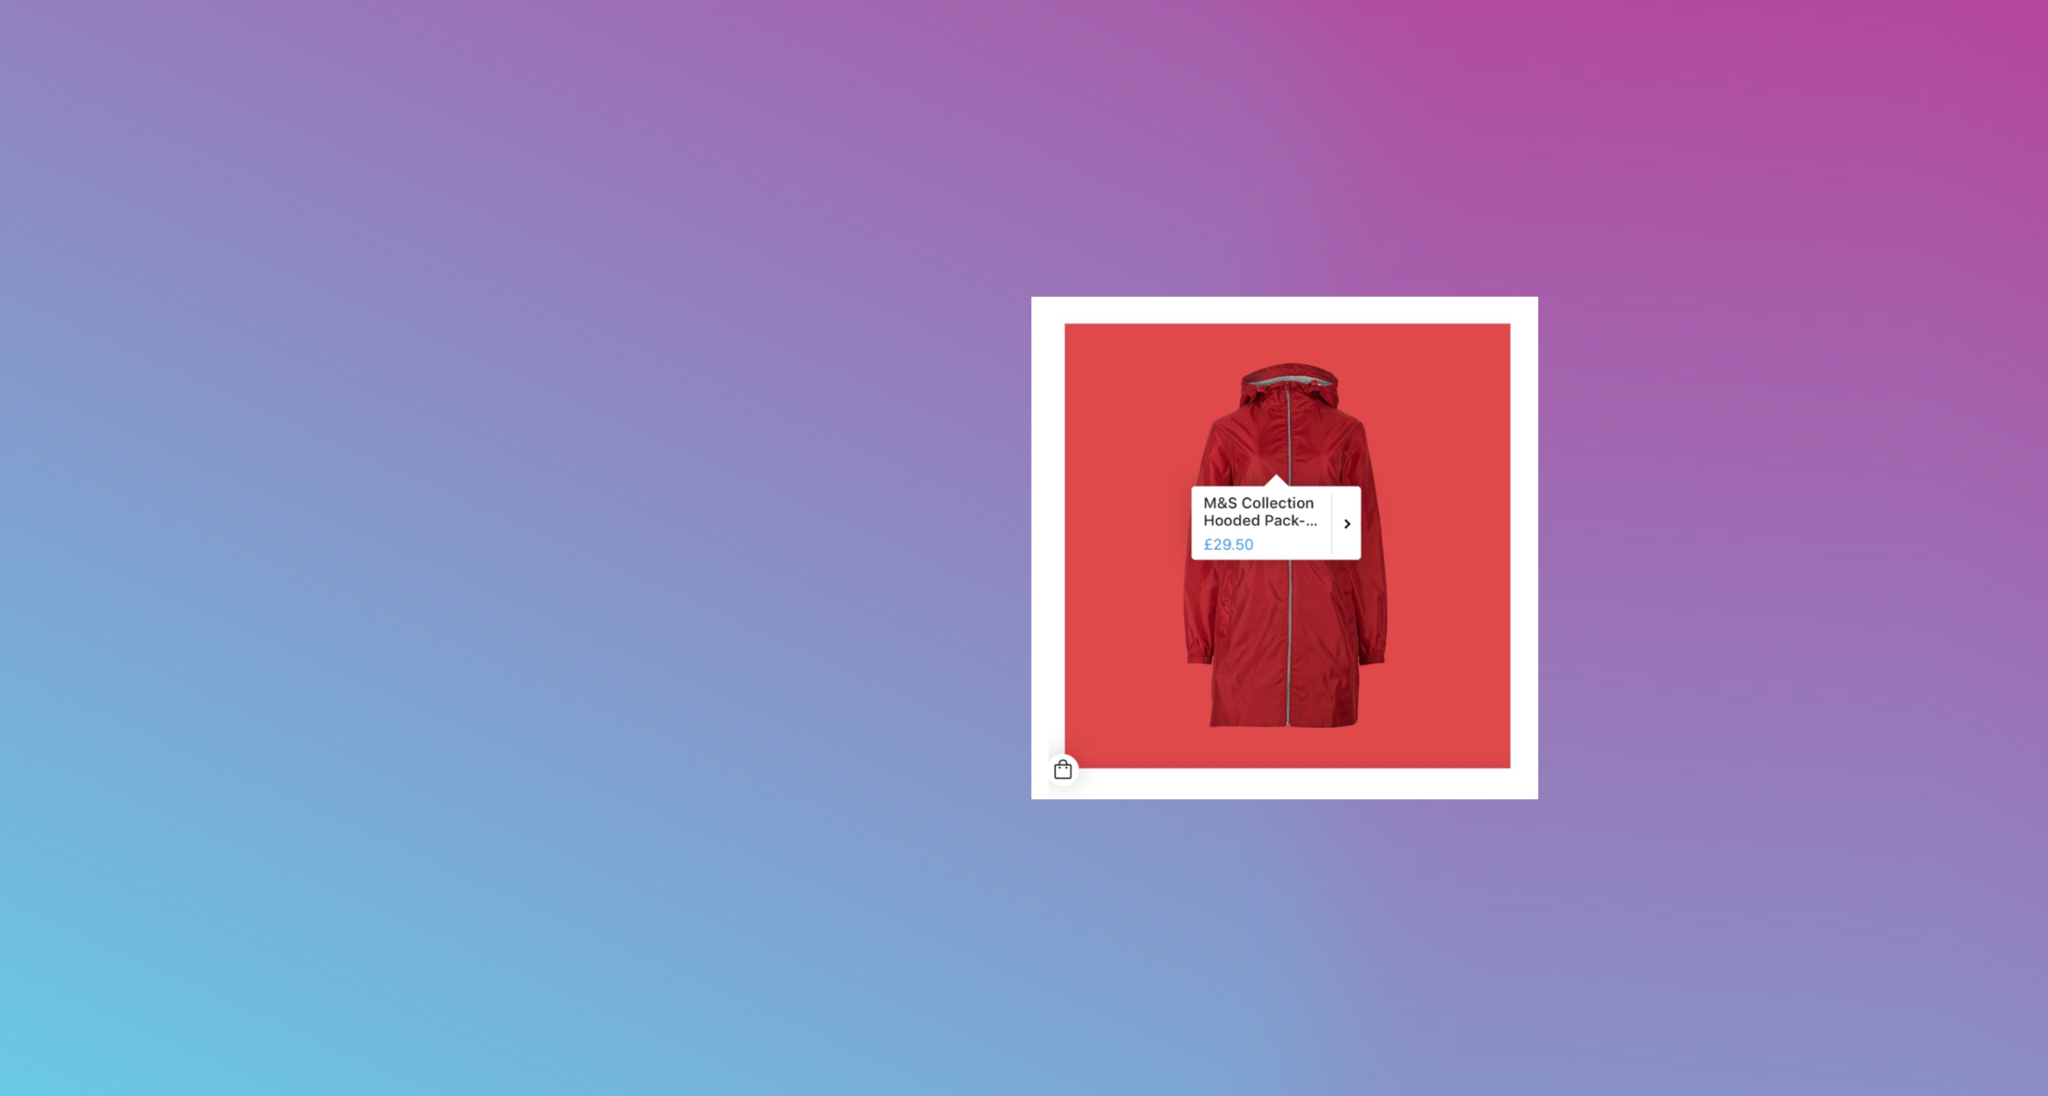 The MetigyIQ guide to using shoppable Instagram posts